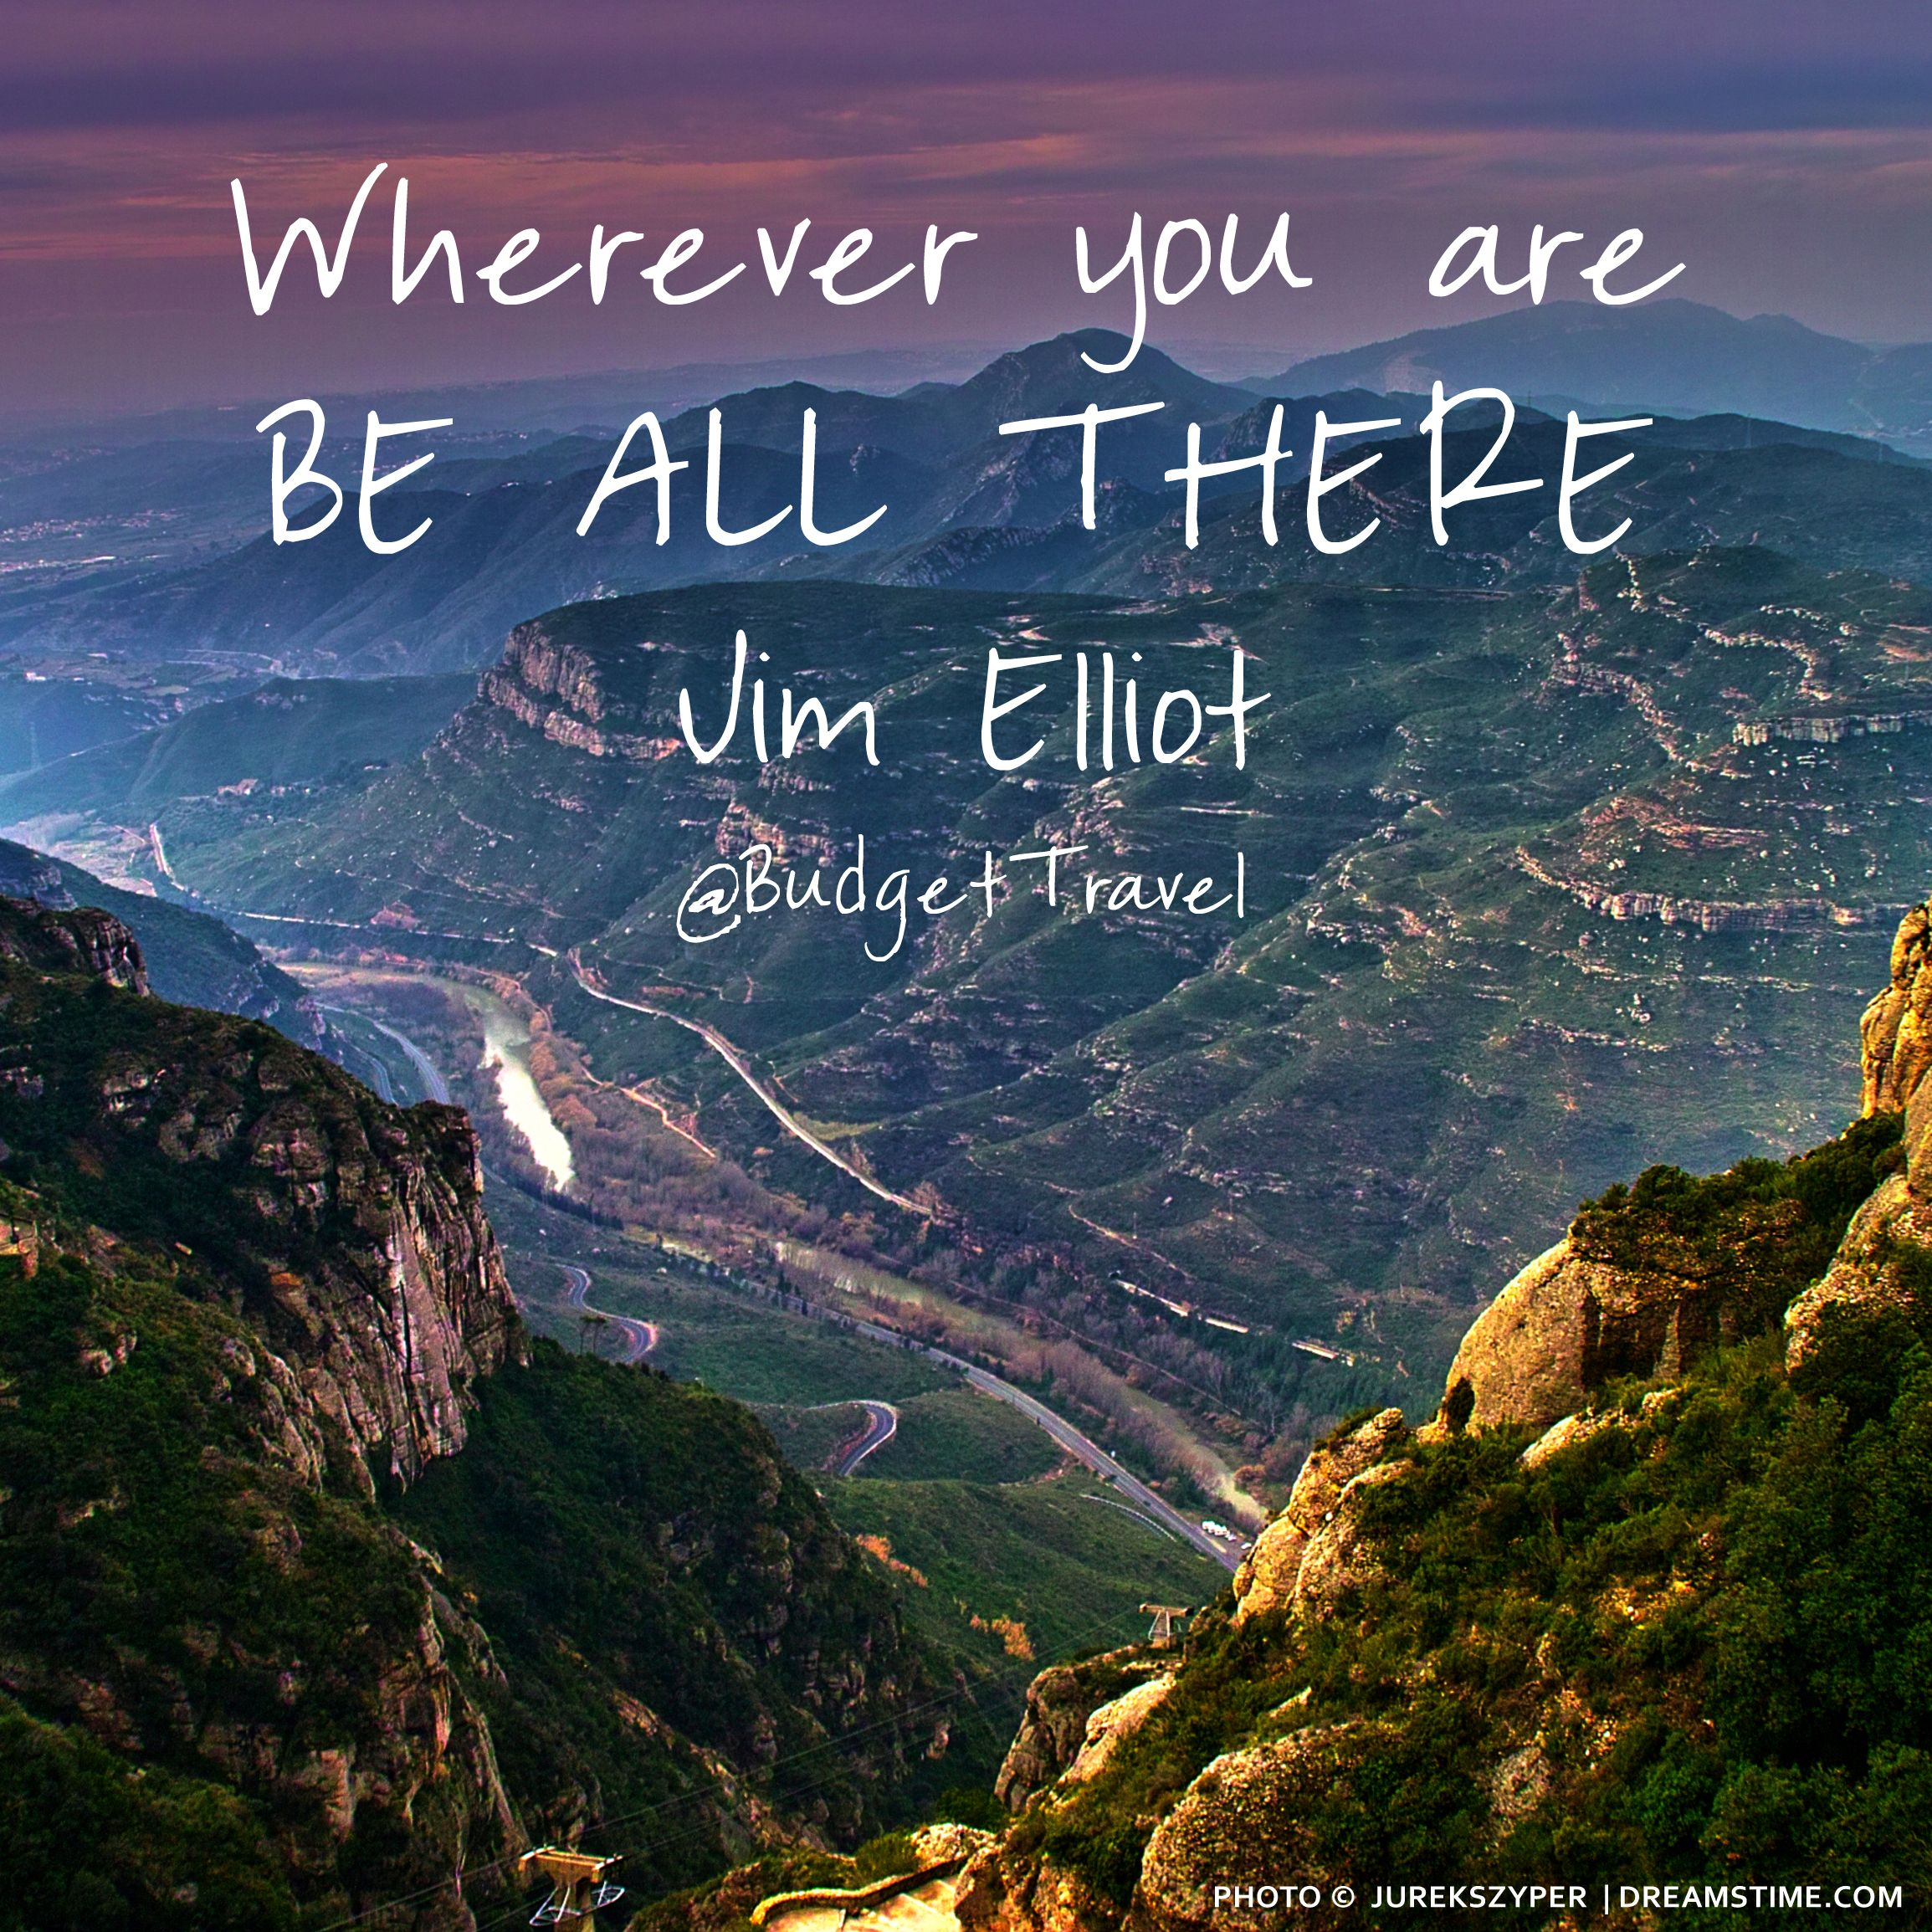 Scenic quotes daily inspirational quotations and sayings on - Wherever You Are Be All There Travel Quote